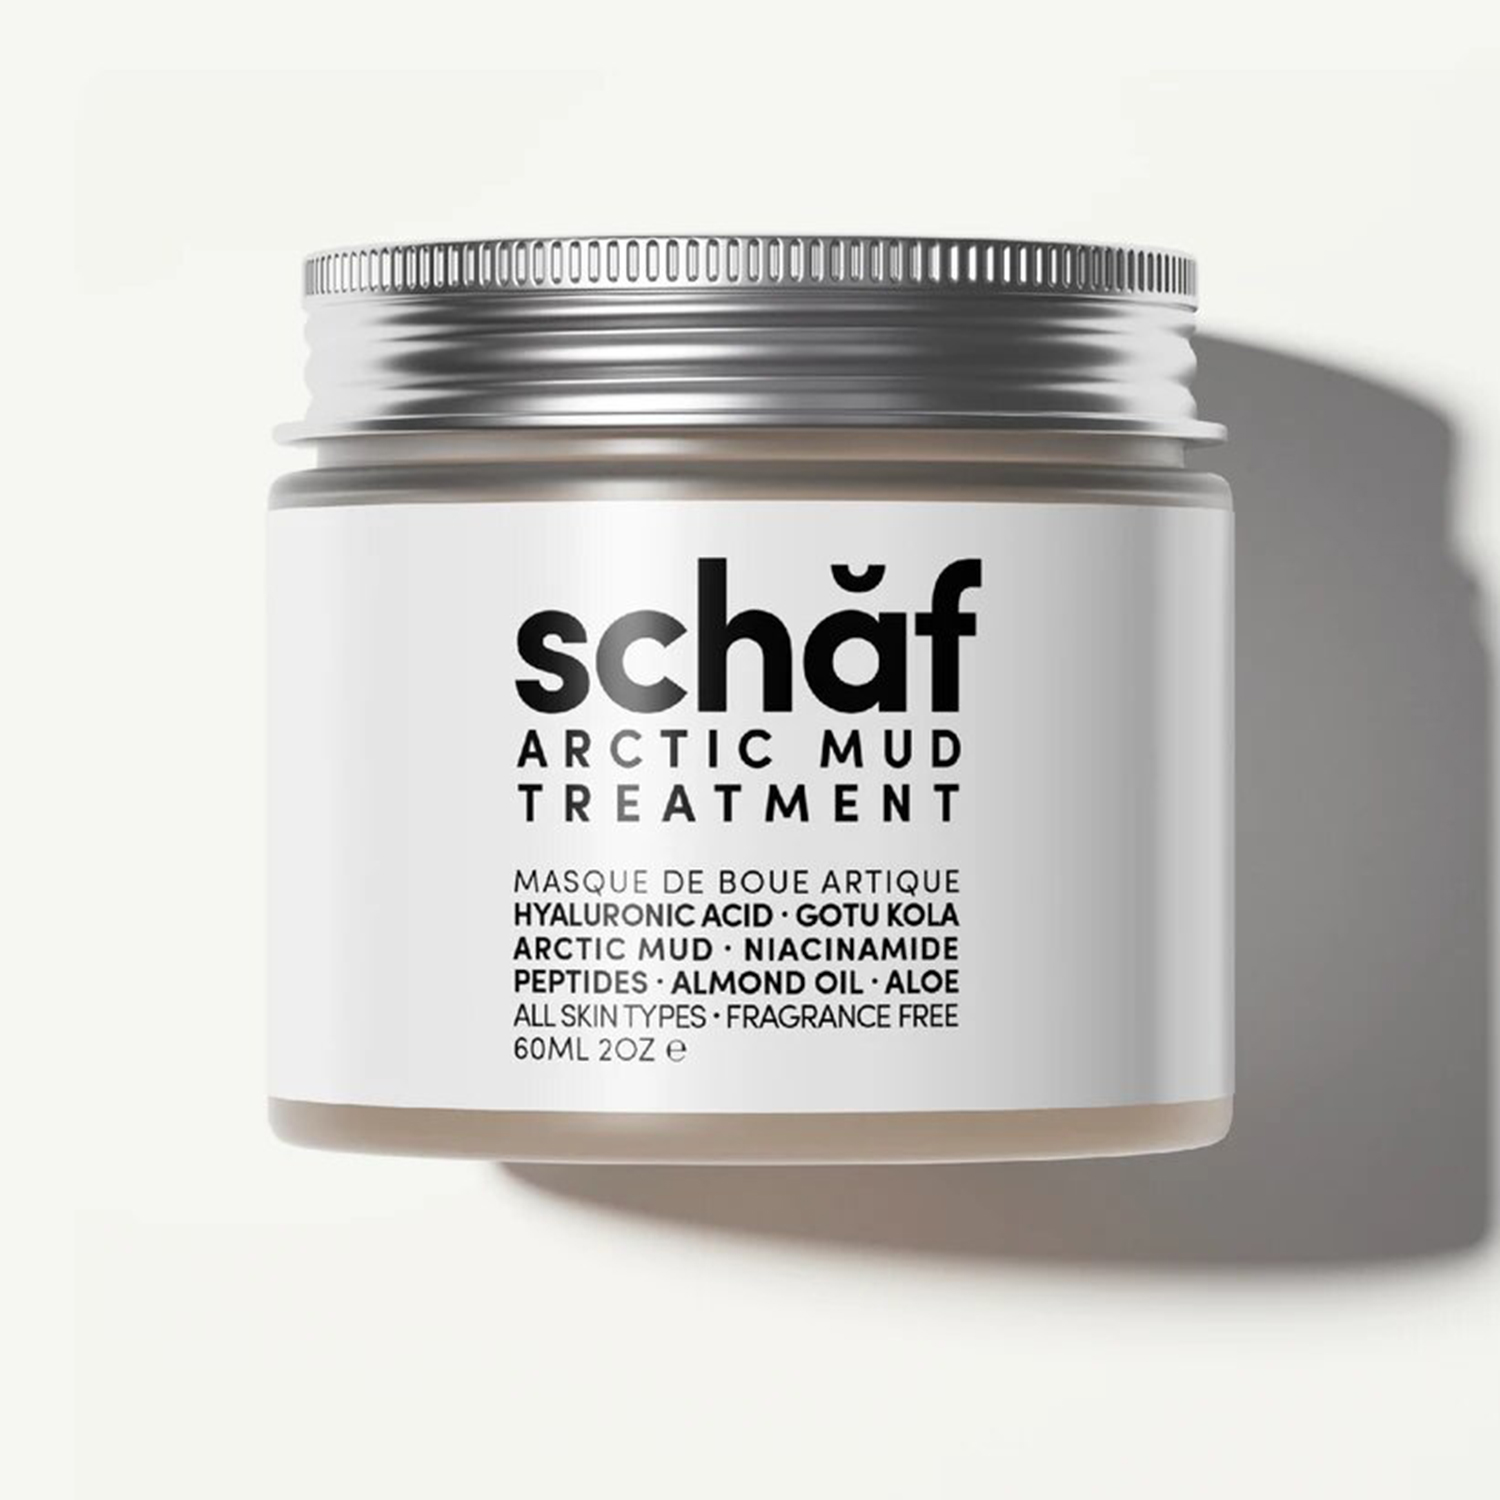 Schaf Arctic Mud Treatment